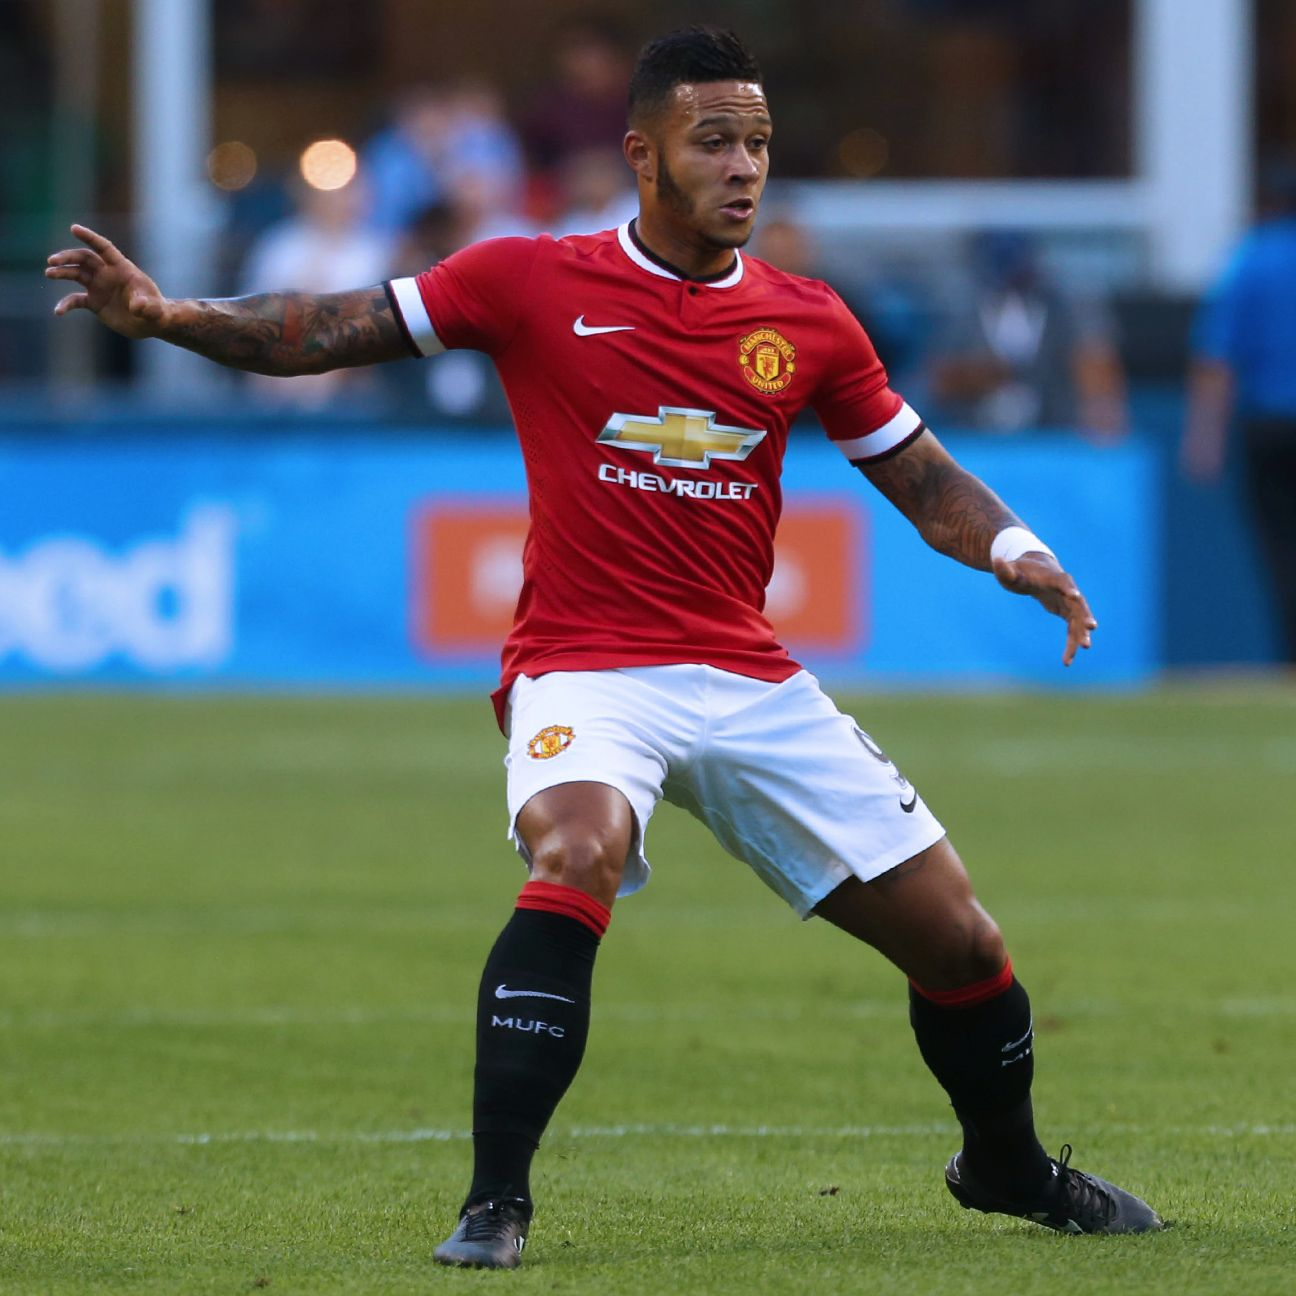 Manchester United's Memphis Depay will face former club PSV Eindhoven in Group B.